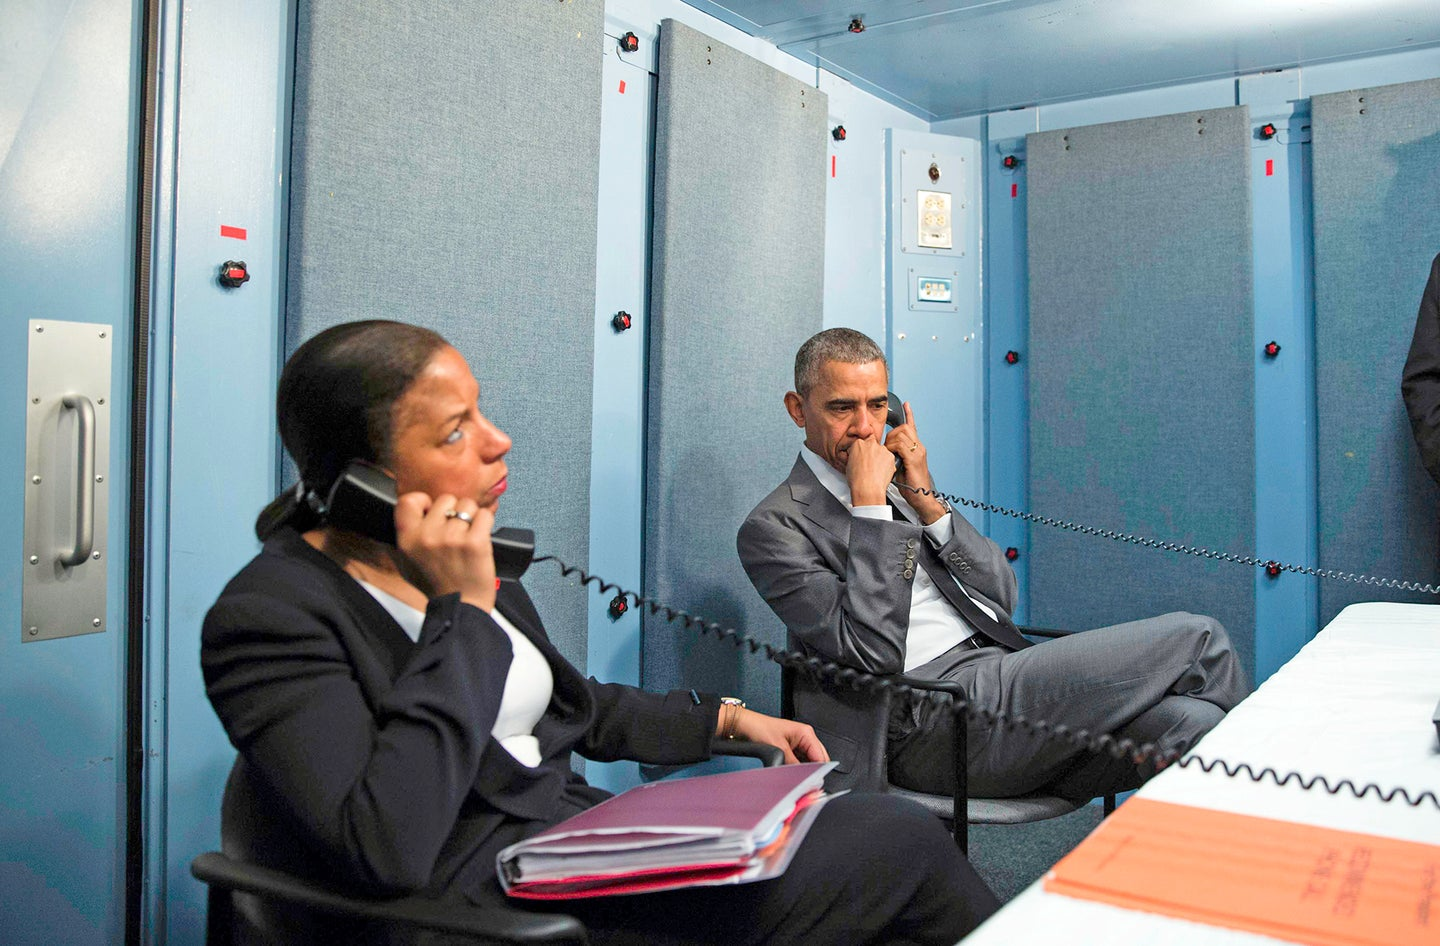 President Barack Obama and National Security Advisor Susan E. Rice talk on the phone with Homeland Security Advisor Lisa Monaco to receive an update on a terrorist attack in Brussels, Belgium. The President made the call from the residence of the U.S. Chief of Mission in Havana, Cuba, March 22, 2016. (Official White House Photo by Pete Souza)This official White House photograph is being made available only for publication by news organizations and/or for personal use printing by the subject(s) of the photograph. The photograph may not be manipulated in any way and may not be used in commercial or political materials, advertisements, emails, products, promotions that in any way suggests approval or endorsement of the President, the First Family, or the White House.